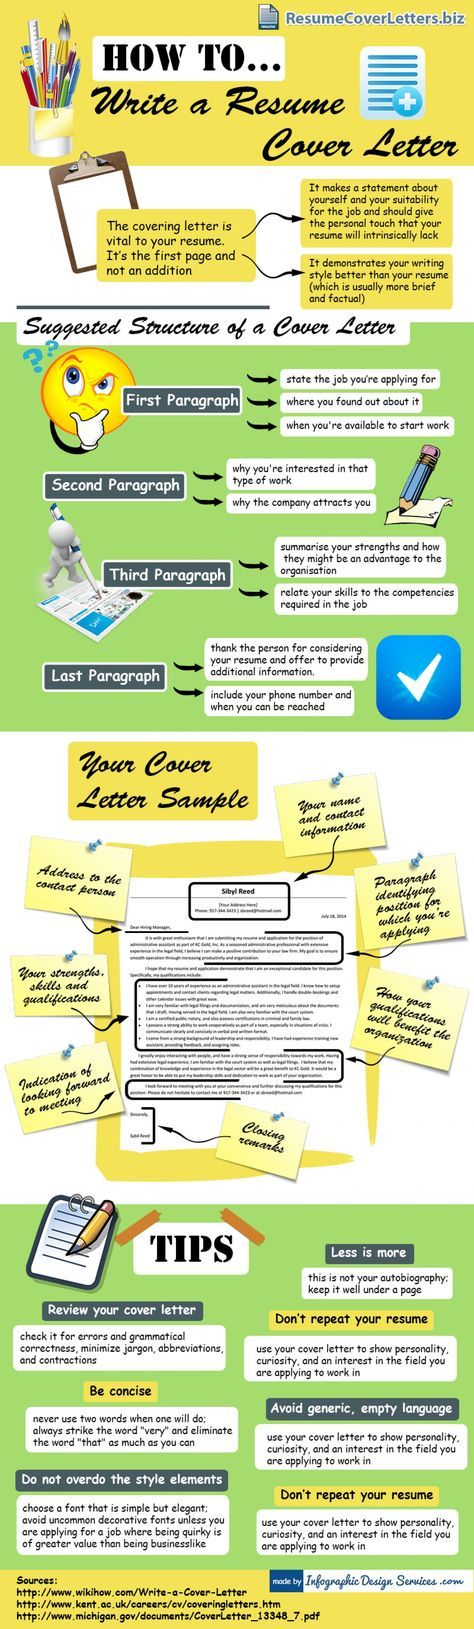 Best 20+ Resume writing tips ideas on Pinterest Cv writing tips - writing resume tips